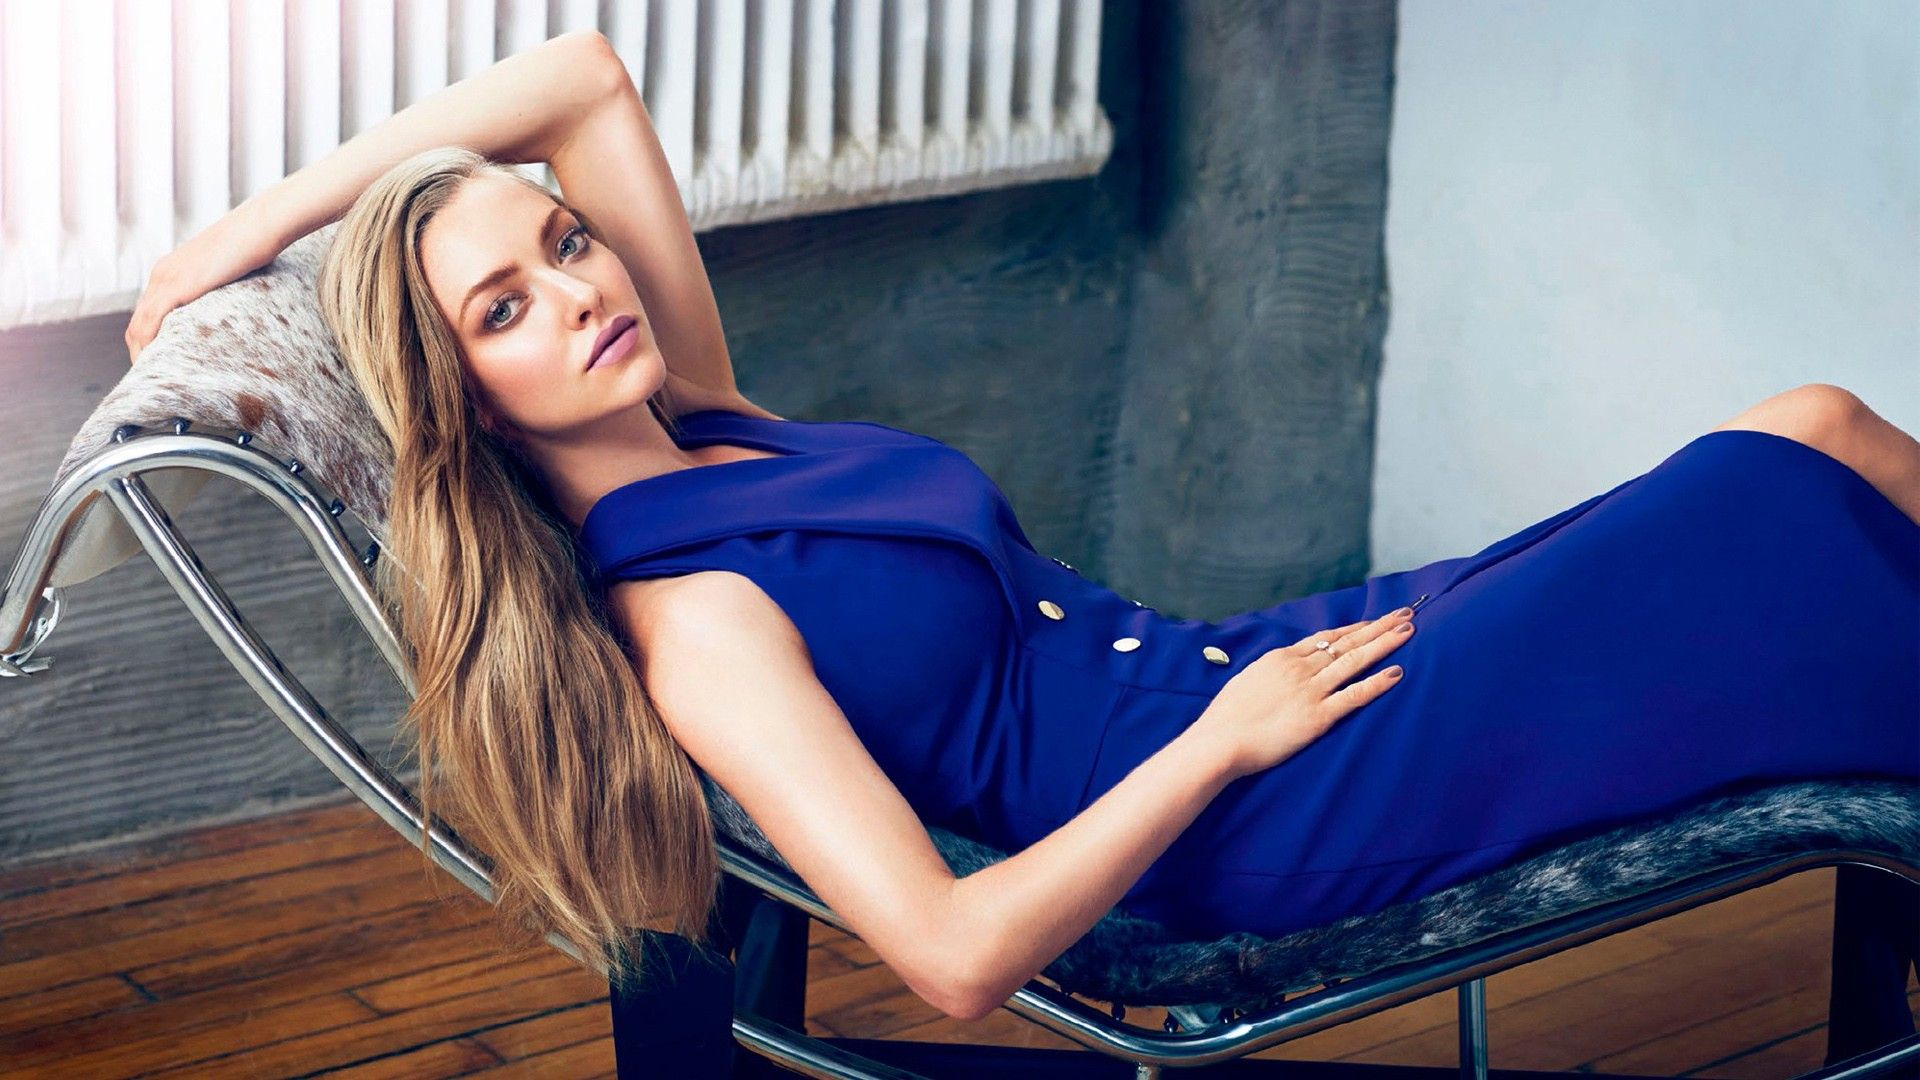 Amanda Seyfried Photo Shoot